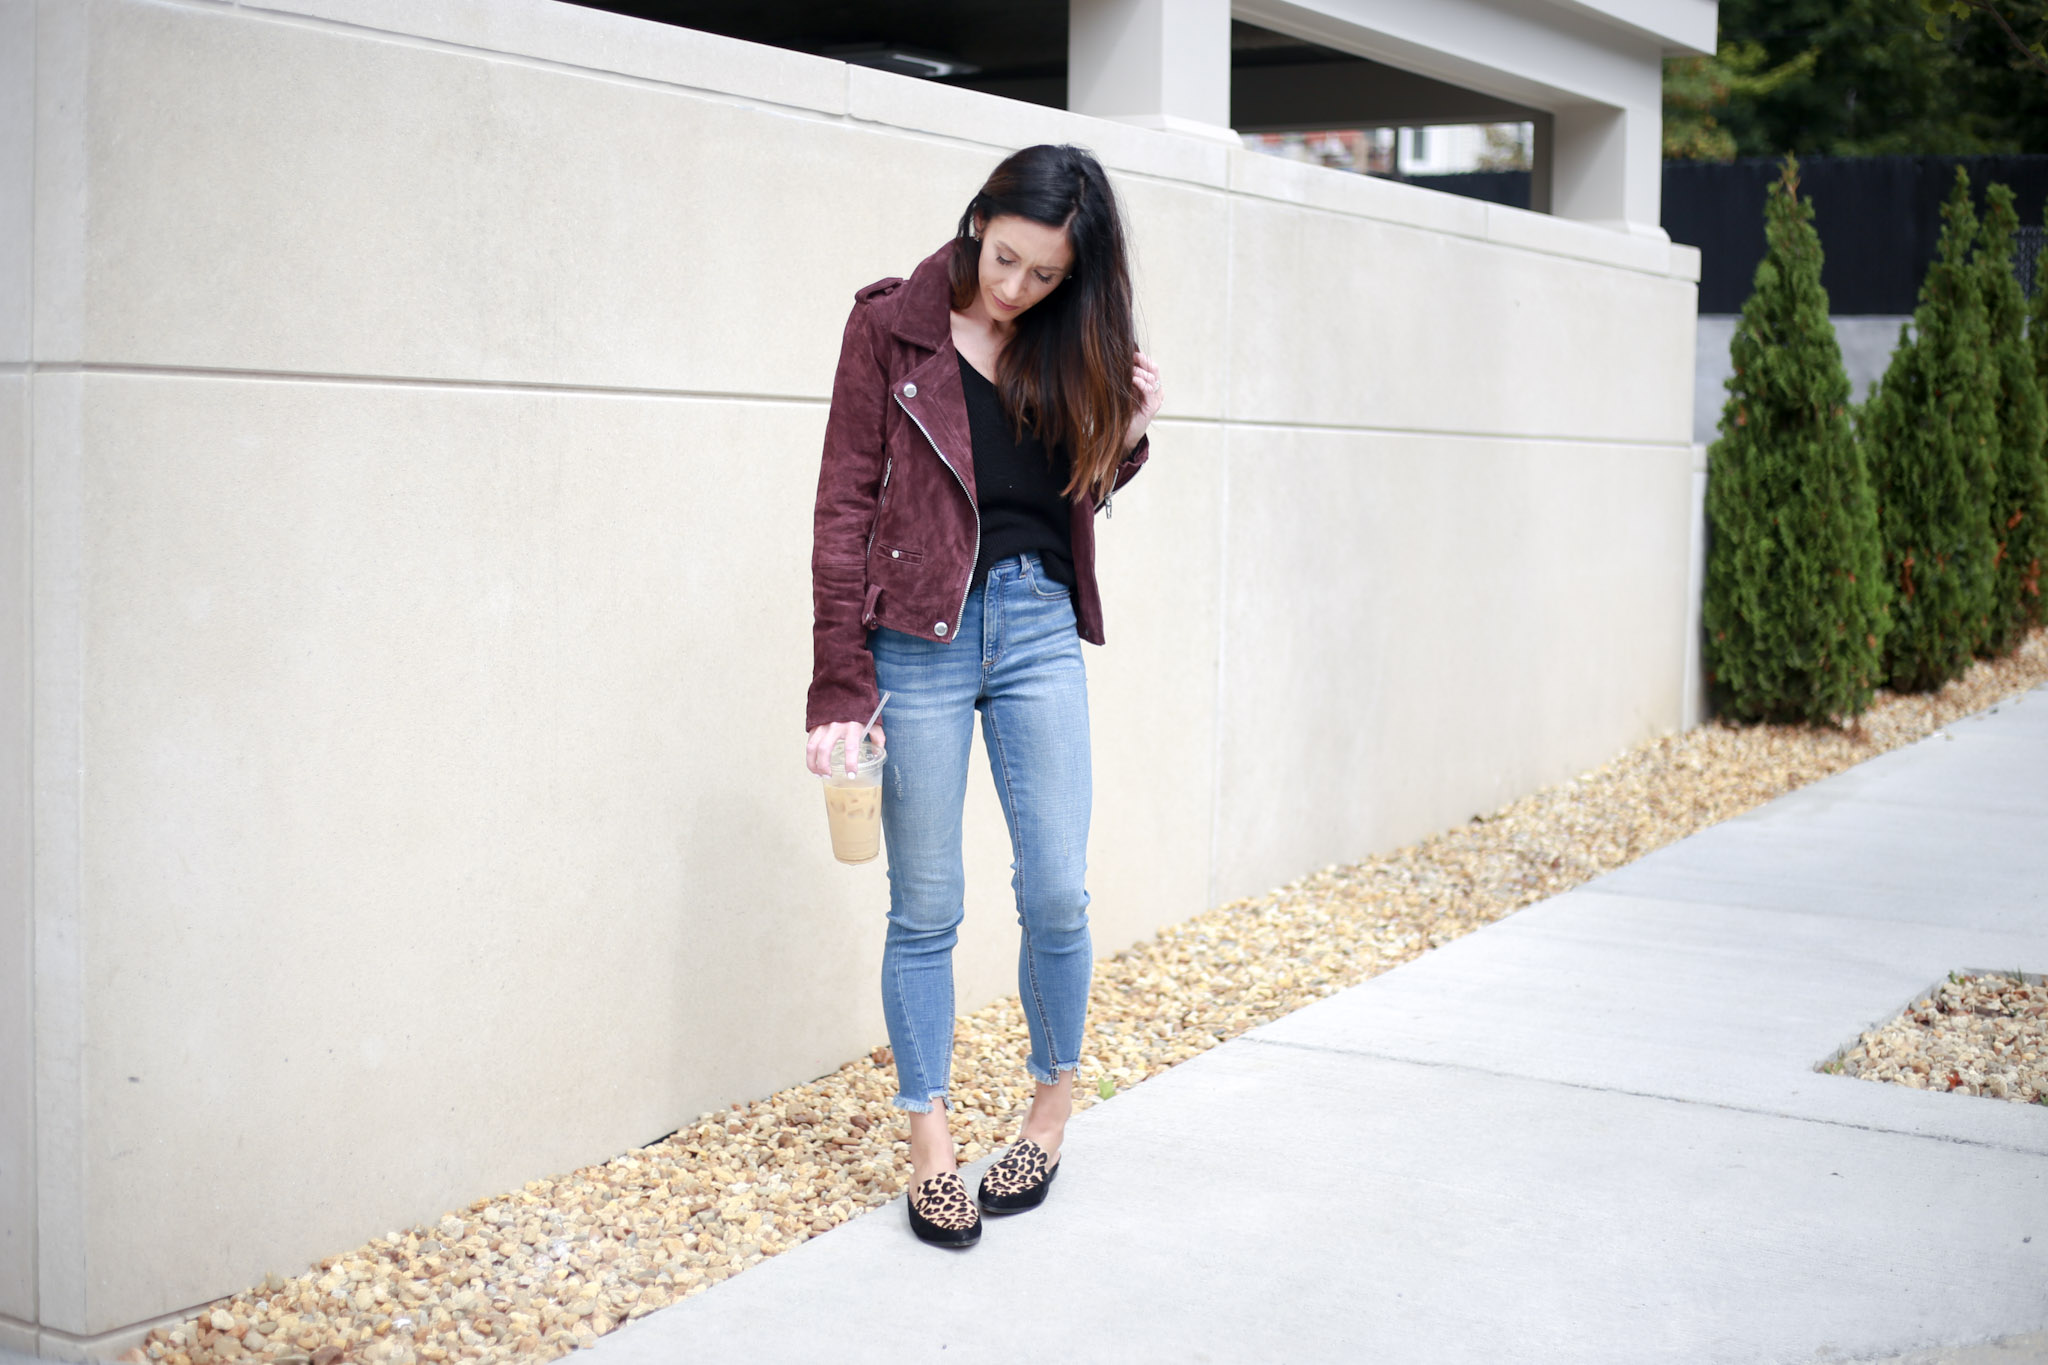 the best moto jcket for under $200 - Capsule Wardrobe Series: Moto Jacket by Boston fashion blogger Living Life Pretty